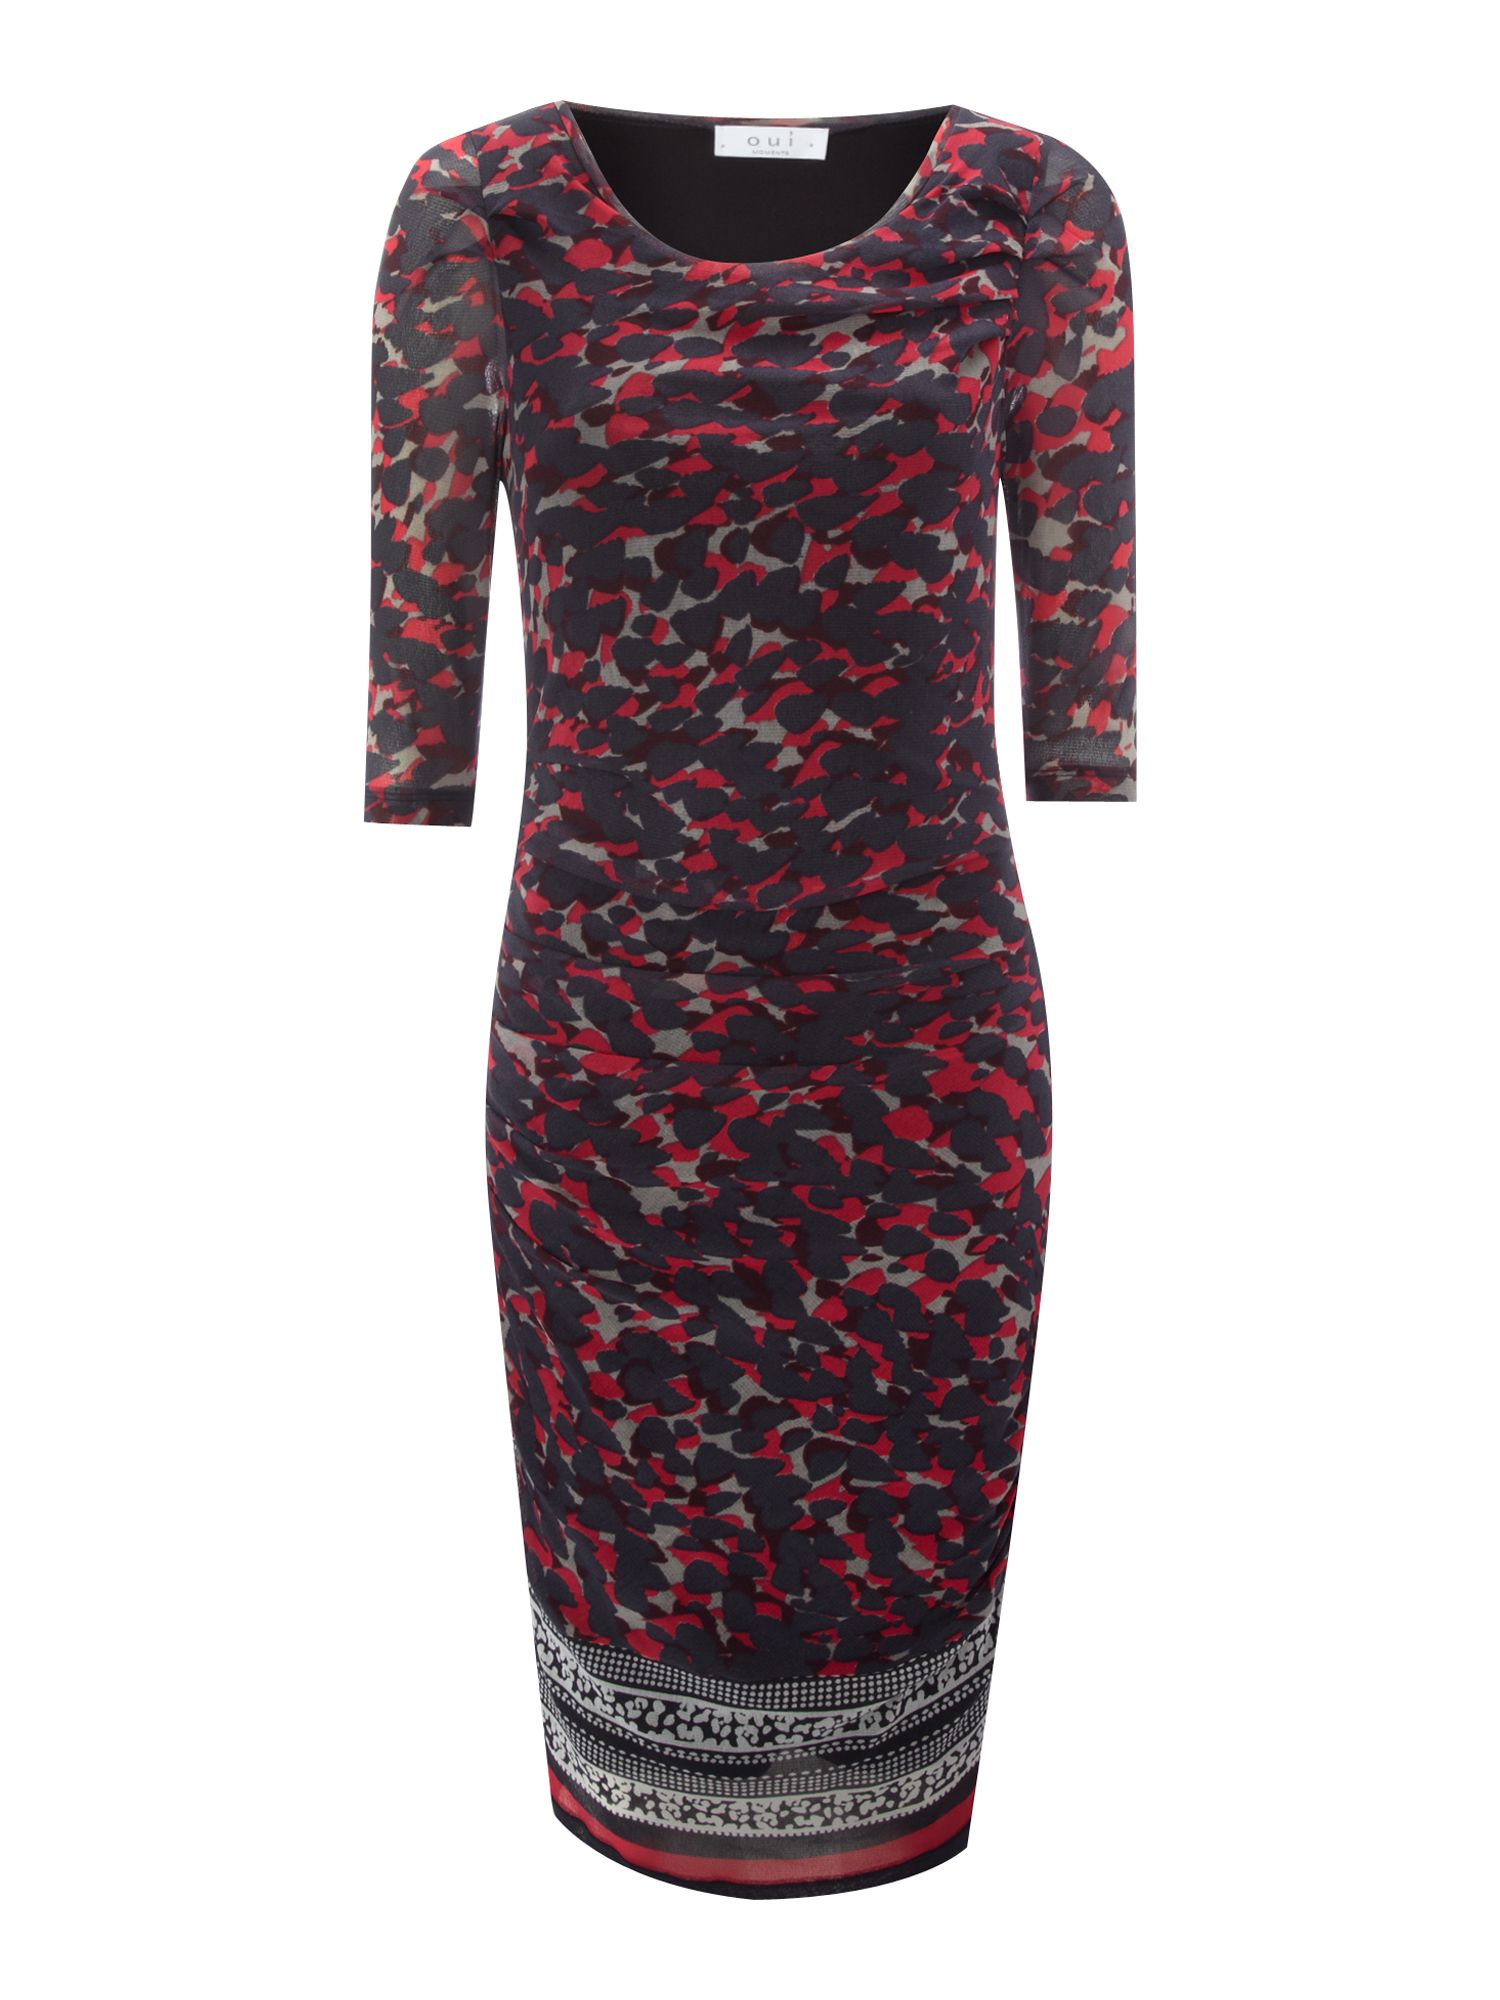 Ruched print dress